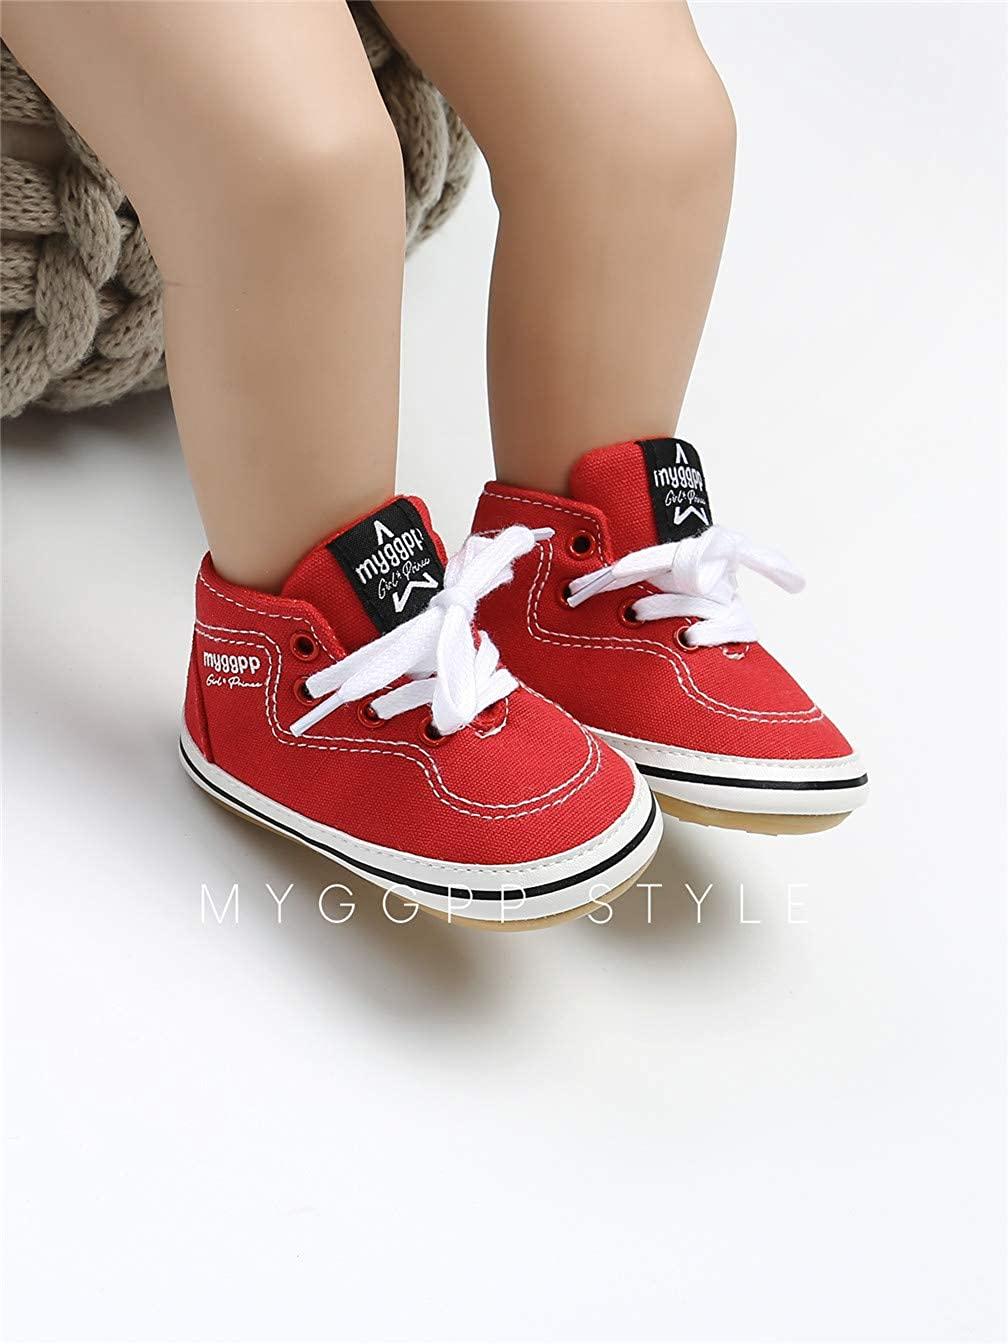 Baby Boys Girls Shoes Infant Newborn Canvas Lace Up Soft Rubber Sole Anti-Slip Sneaker Toddler Shoes